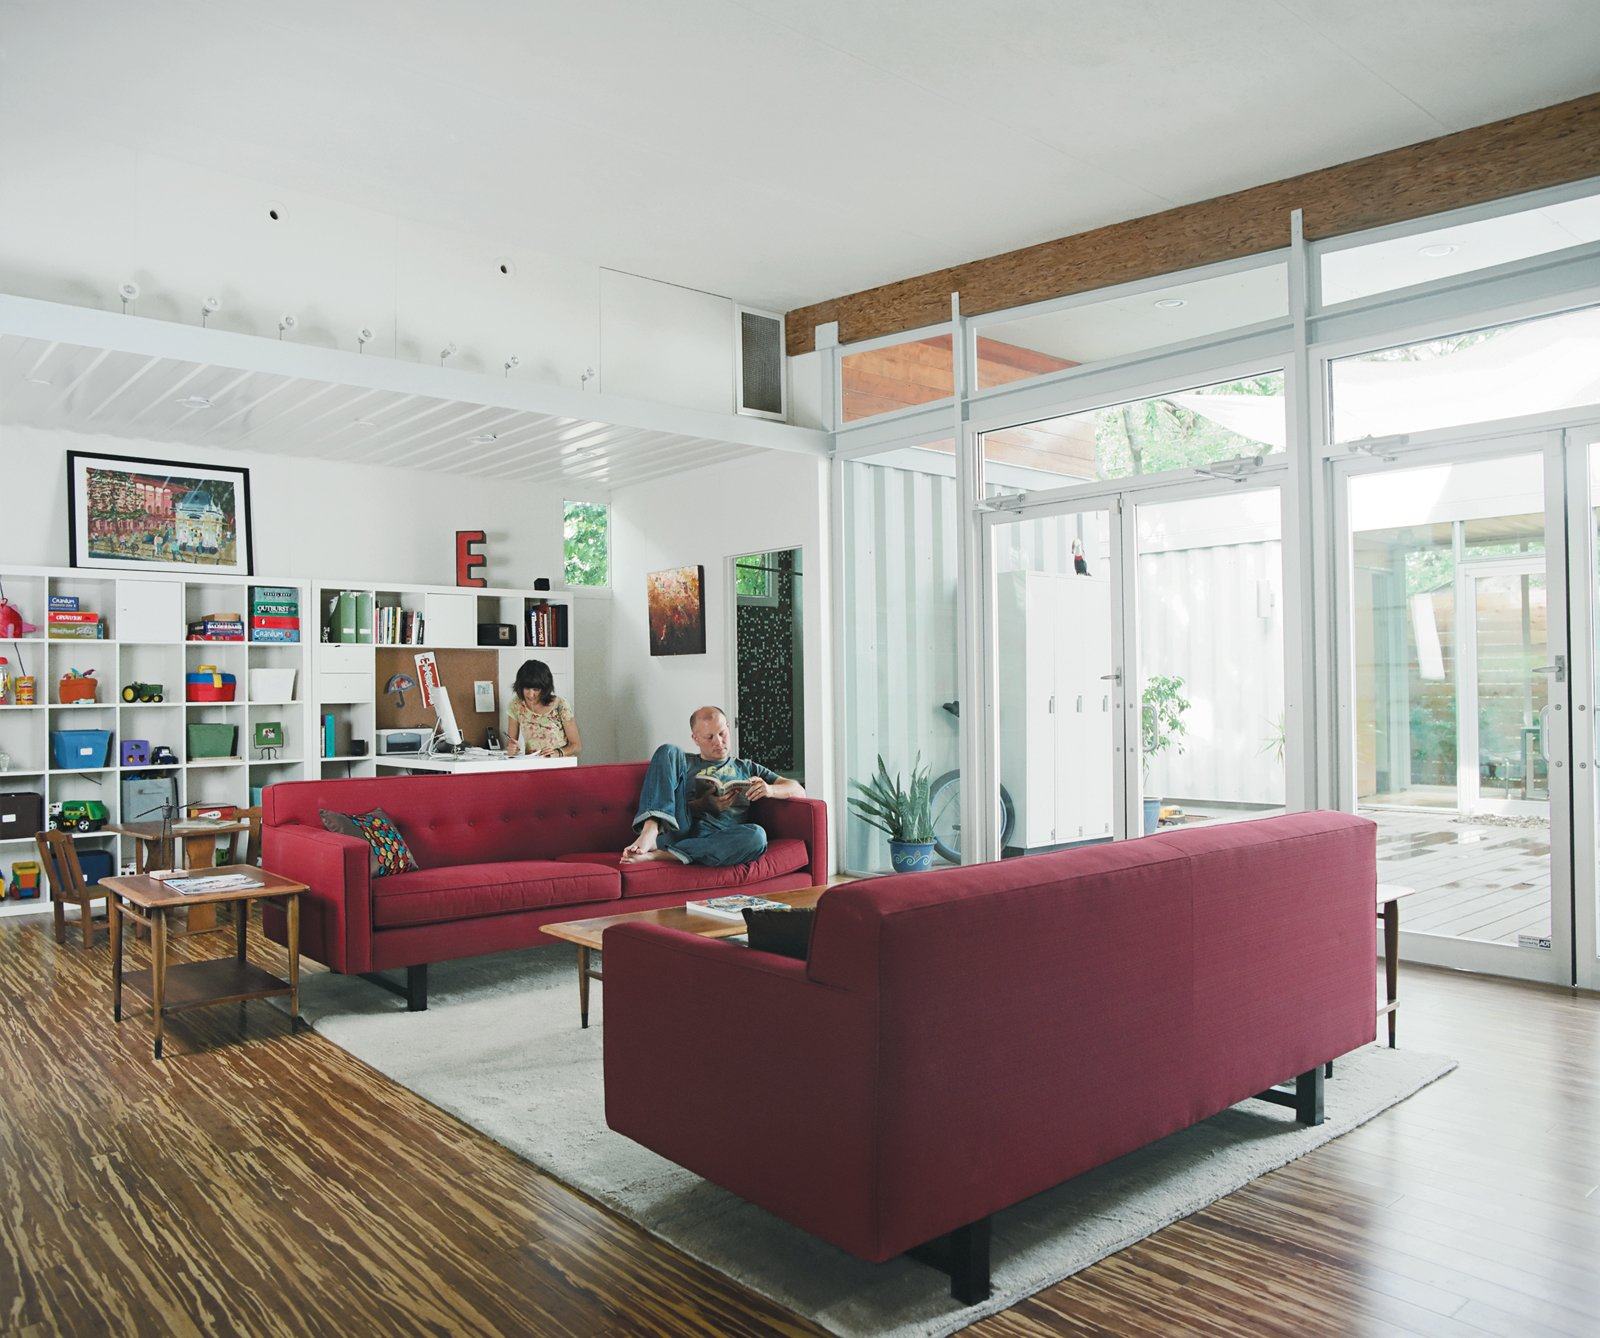 """The open-plan living spaces act like a """"giant kitchen"""" that invites guests to mingle throughout the house. The white rug anchors the living room furniture, which includes two red couches from Room and Board and a coffee table and end tables that were thrift-store finds.  Roberston opted for commercial storefront doors over sliding glass ones for the back of the house. """"It's the least expensive way to get a wall of glass,"""" he says. The only drawback: The doors automatically lock when they close so Freeman and Feldmann have to be sure to always have keys on hand.  Photo 18 of 20 in 20 Modern Living Rooms from The Shipping Muse"""